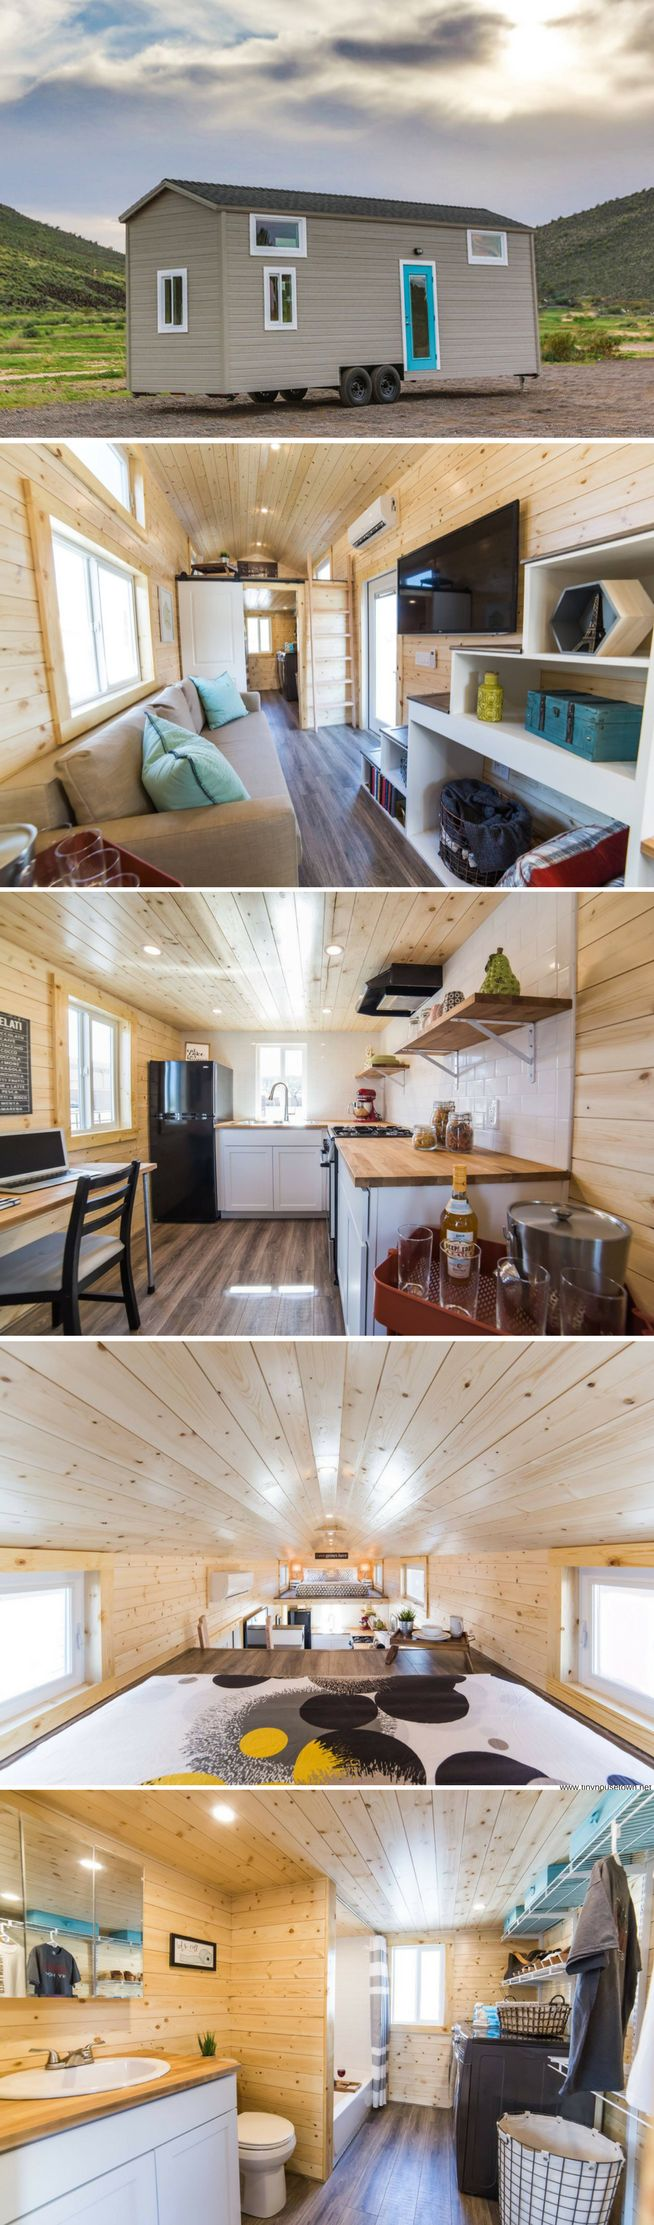 The Mansion Elite tiny house (350 sq ft)